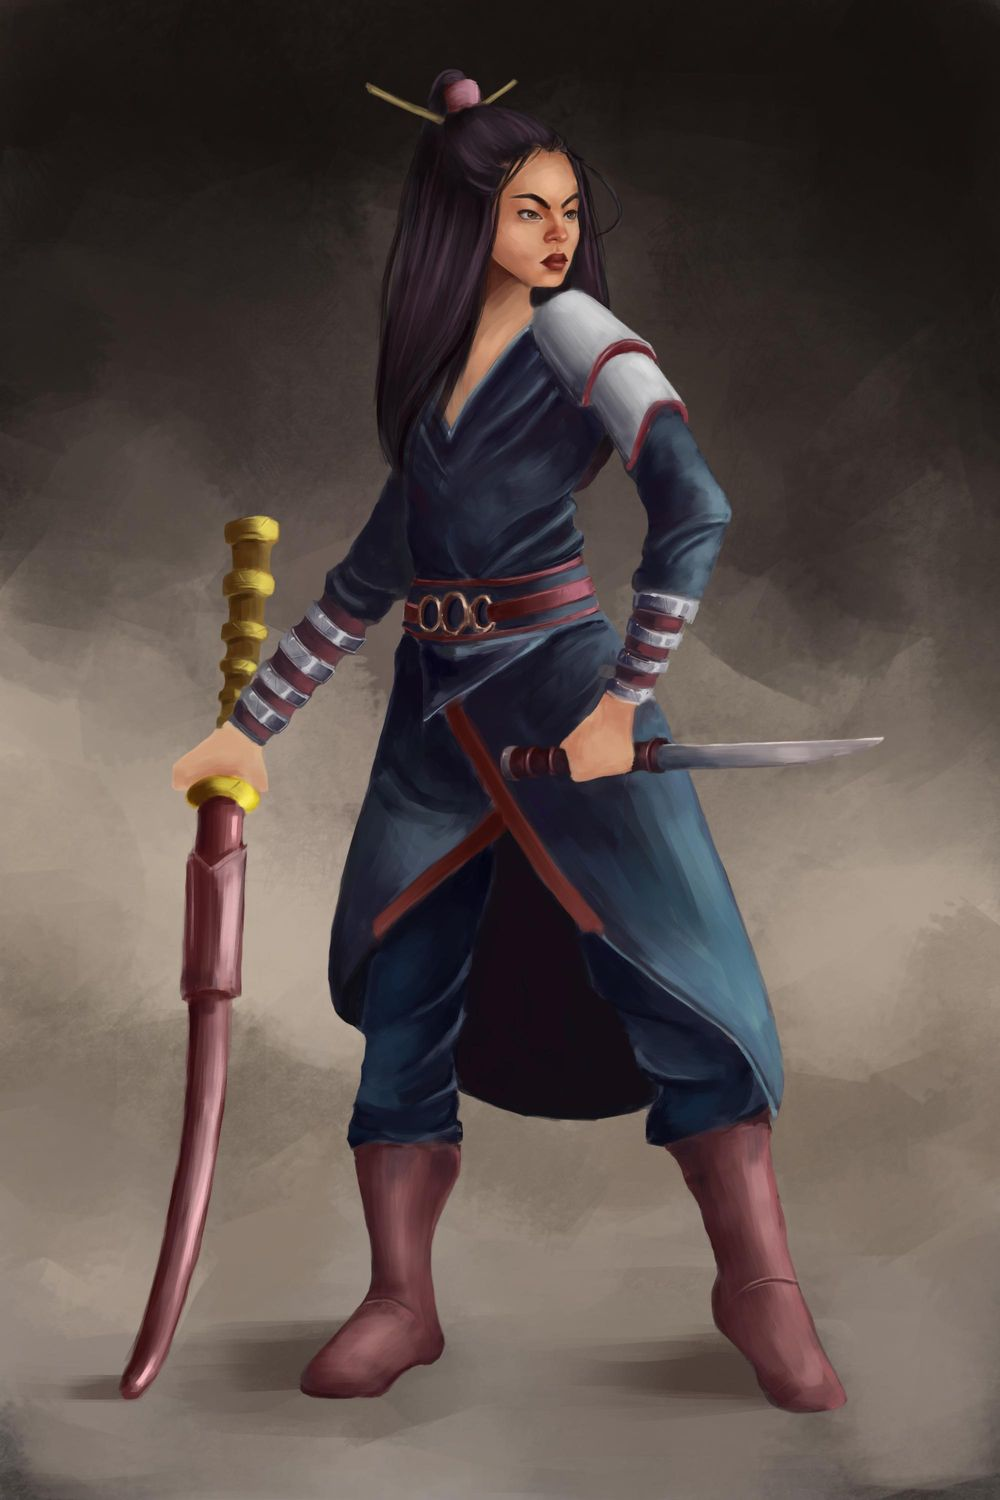 warrior - image 1 - student project